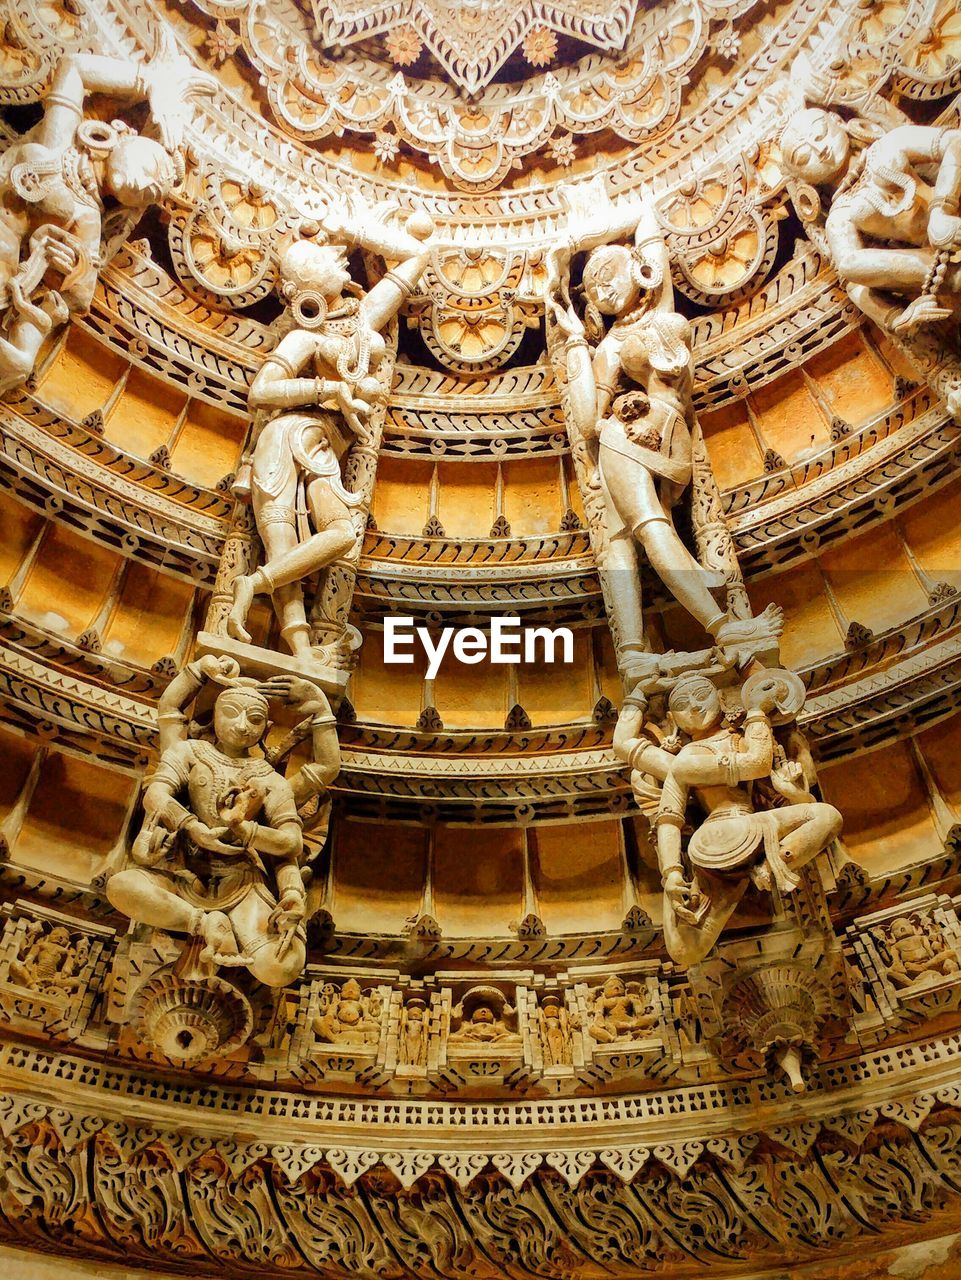 ornate, religion, architecture, art and craft, low angle view, spirituality, carving - craft product, place of worship, history, building exterior, statue, sculpture, travel destinations, bas relief, built structure, no people, day, outdoors, close-up